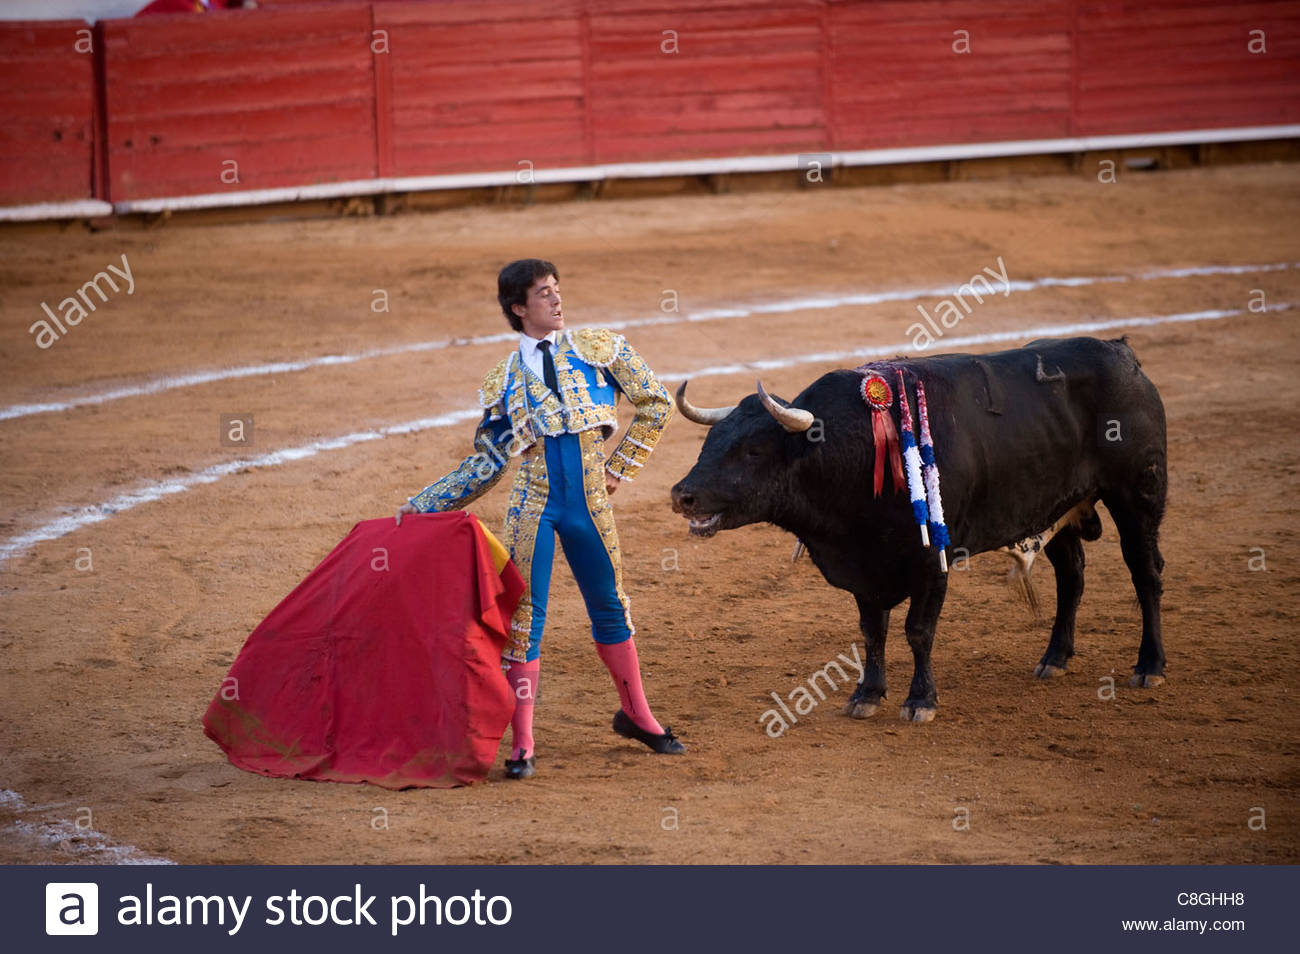 At a bullfight in Mexico City, a Matador demonstrates his courage. - Stock Image